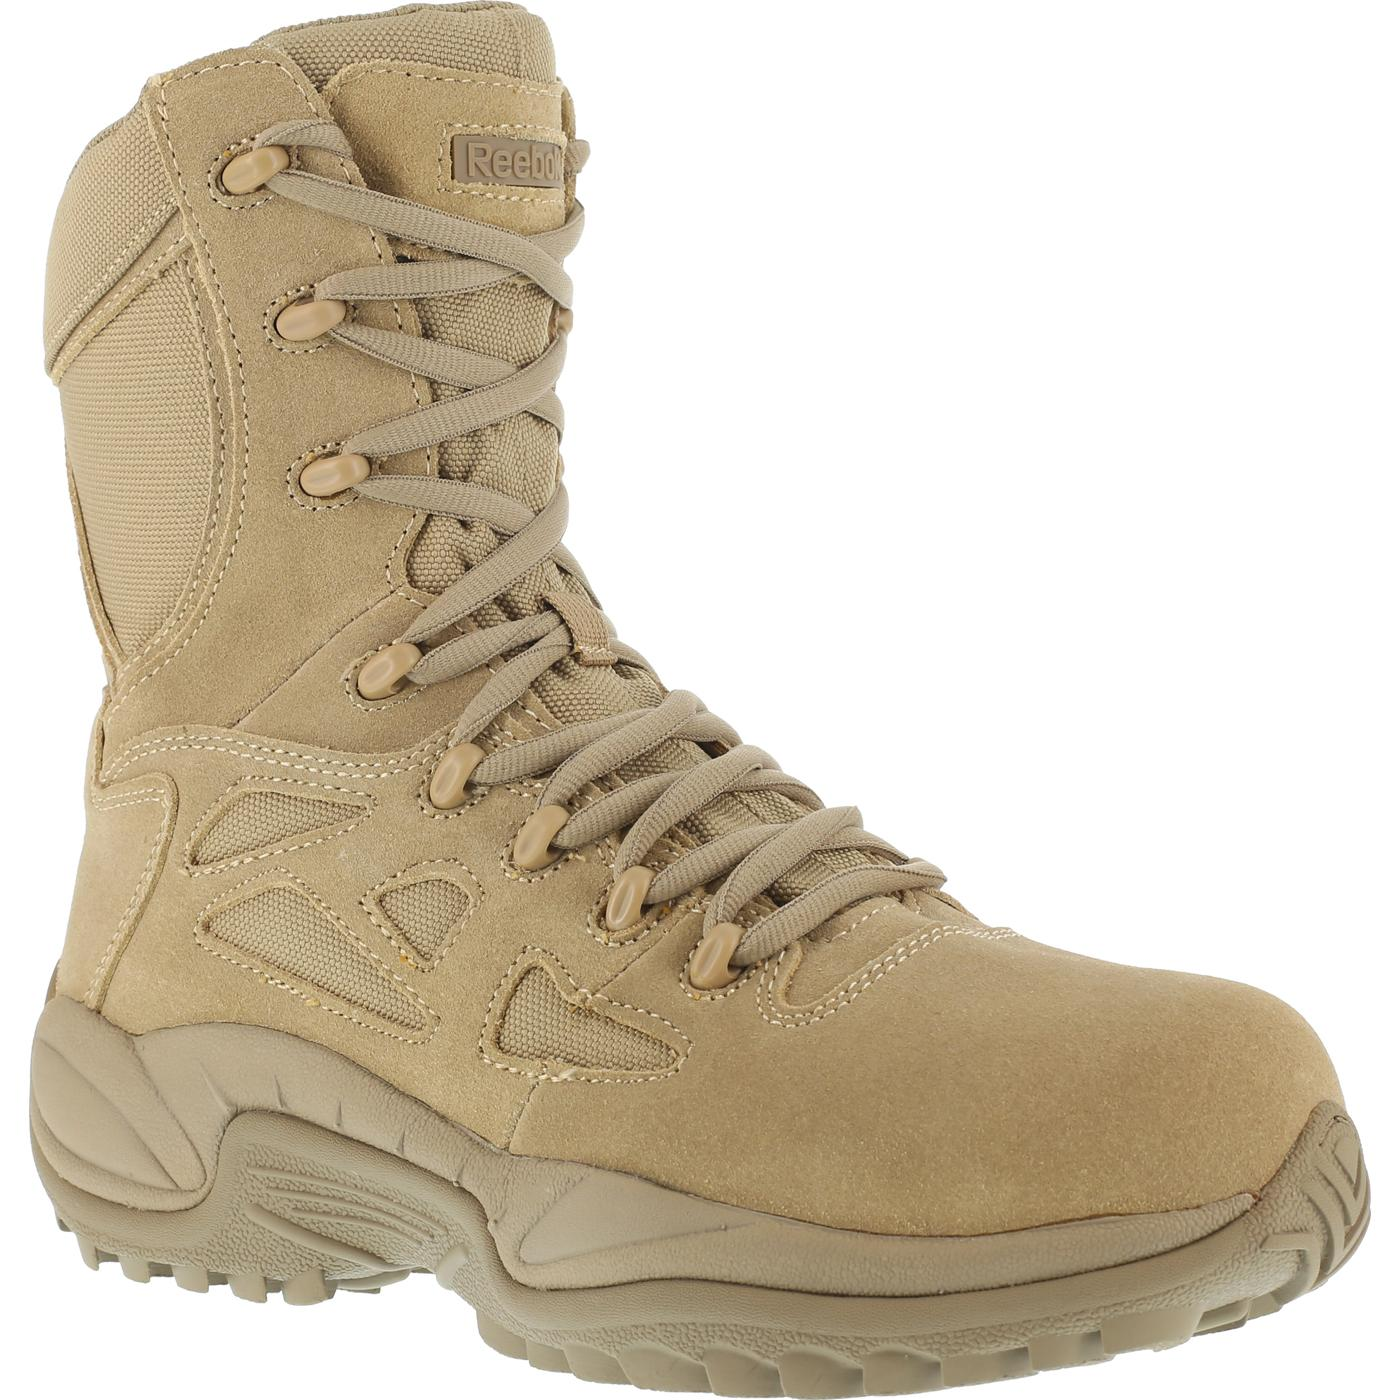 Tan Reebok Stealth Composite Toe Military Boot W Side